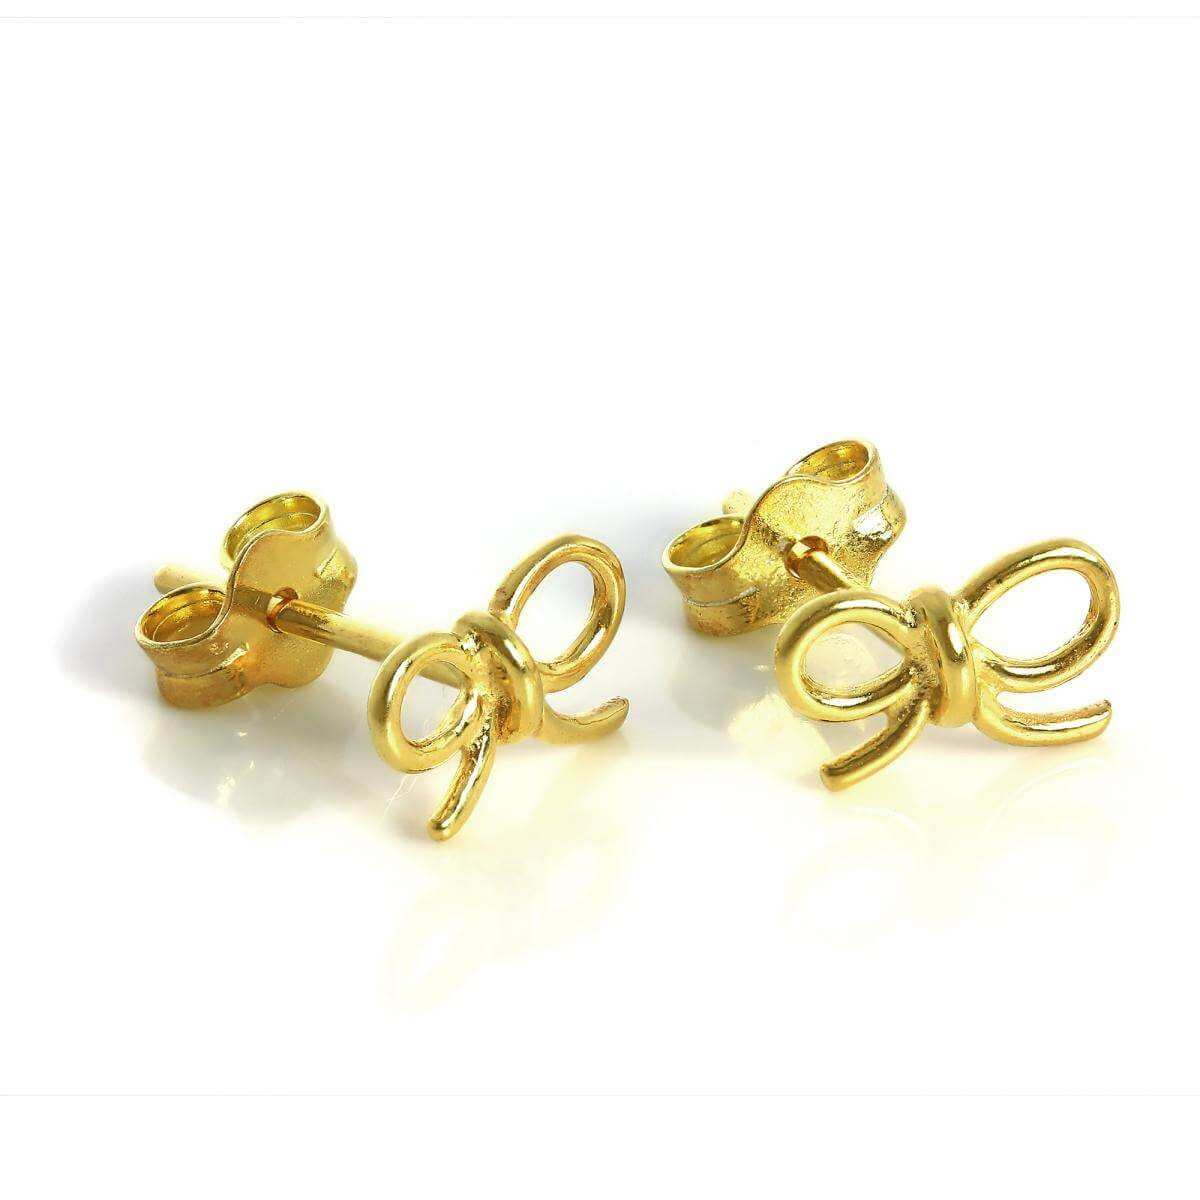 Gold Dipped Sterling Silver Bow Stud Earrings